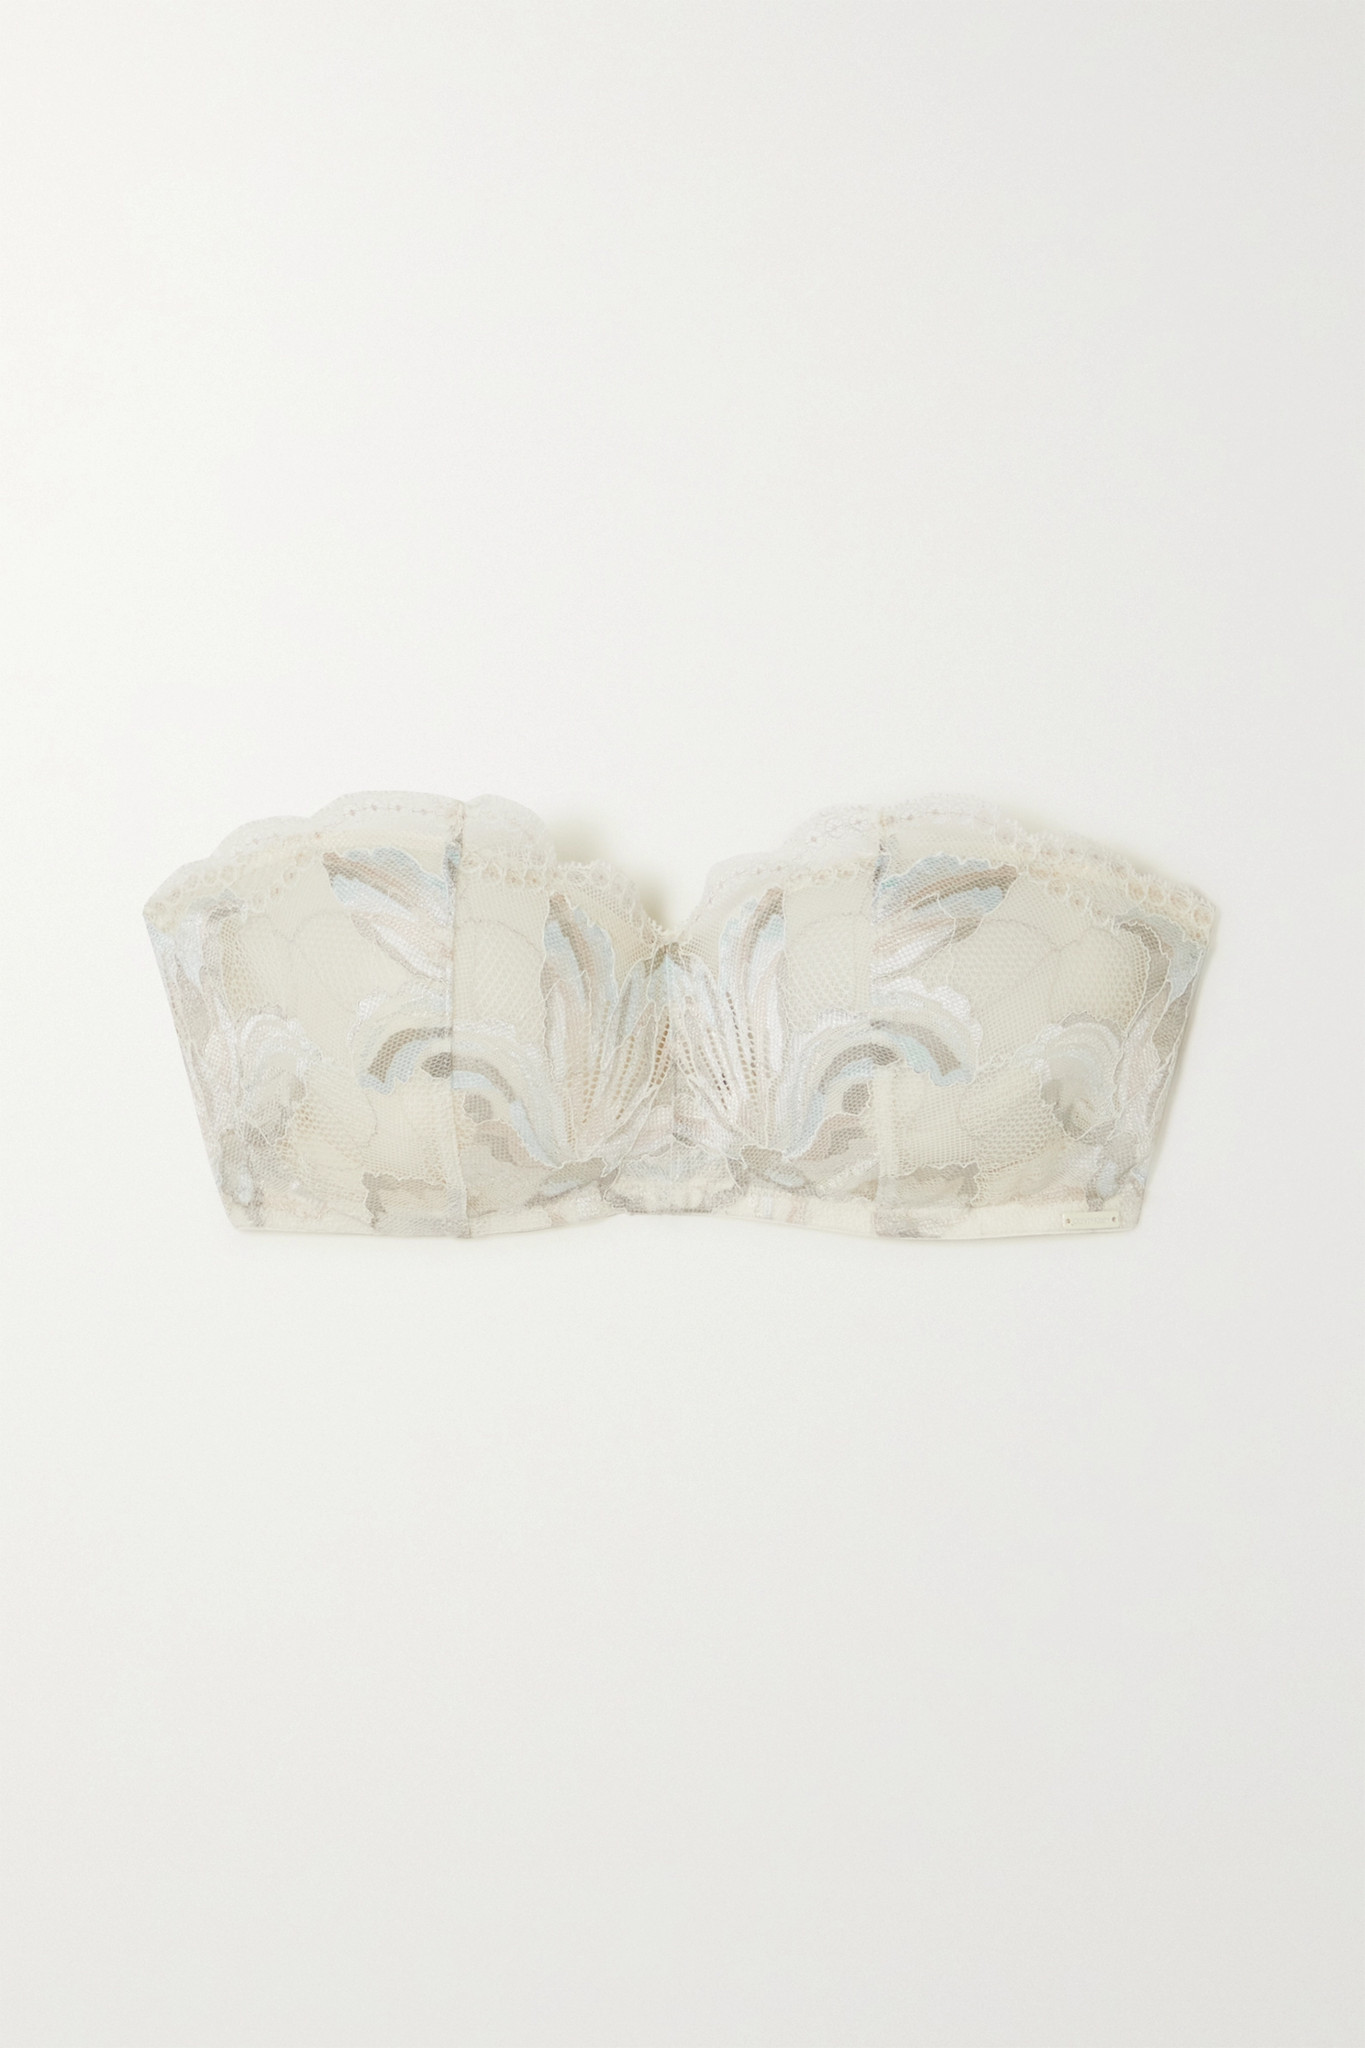 CALVIN KLEIN - Amarylis Lace-trimmed Tulle Underwired Bra - White - 32B